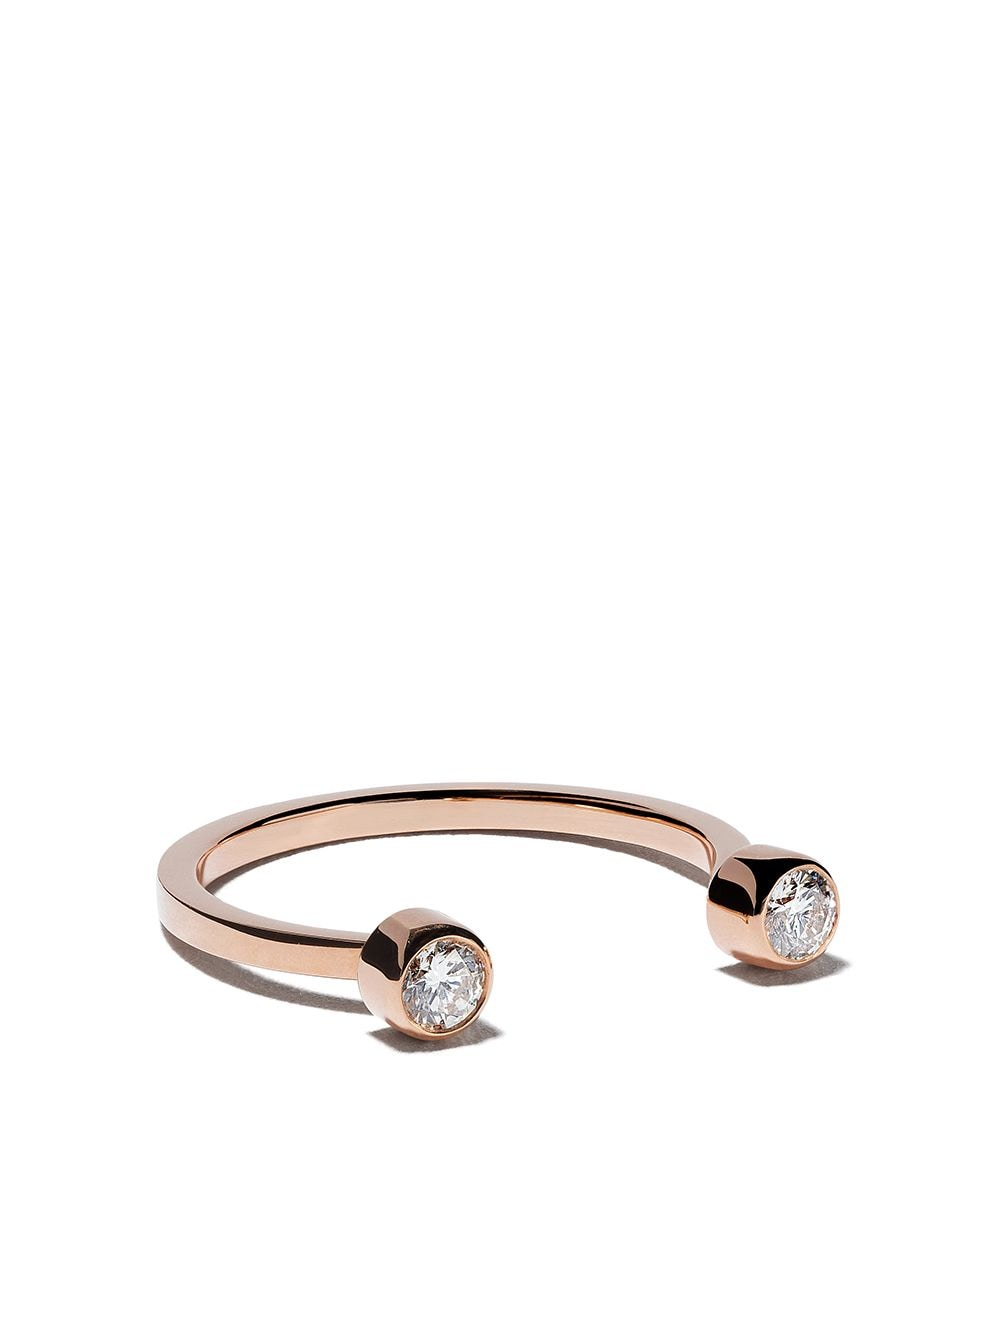 Vanrycke 18kt rose gold diamond Mademoiselle Else ring von Vanrycke